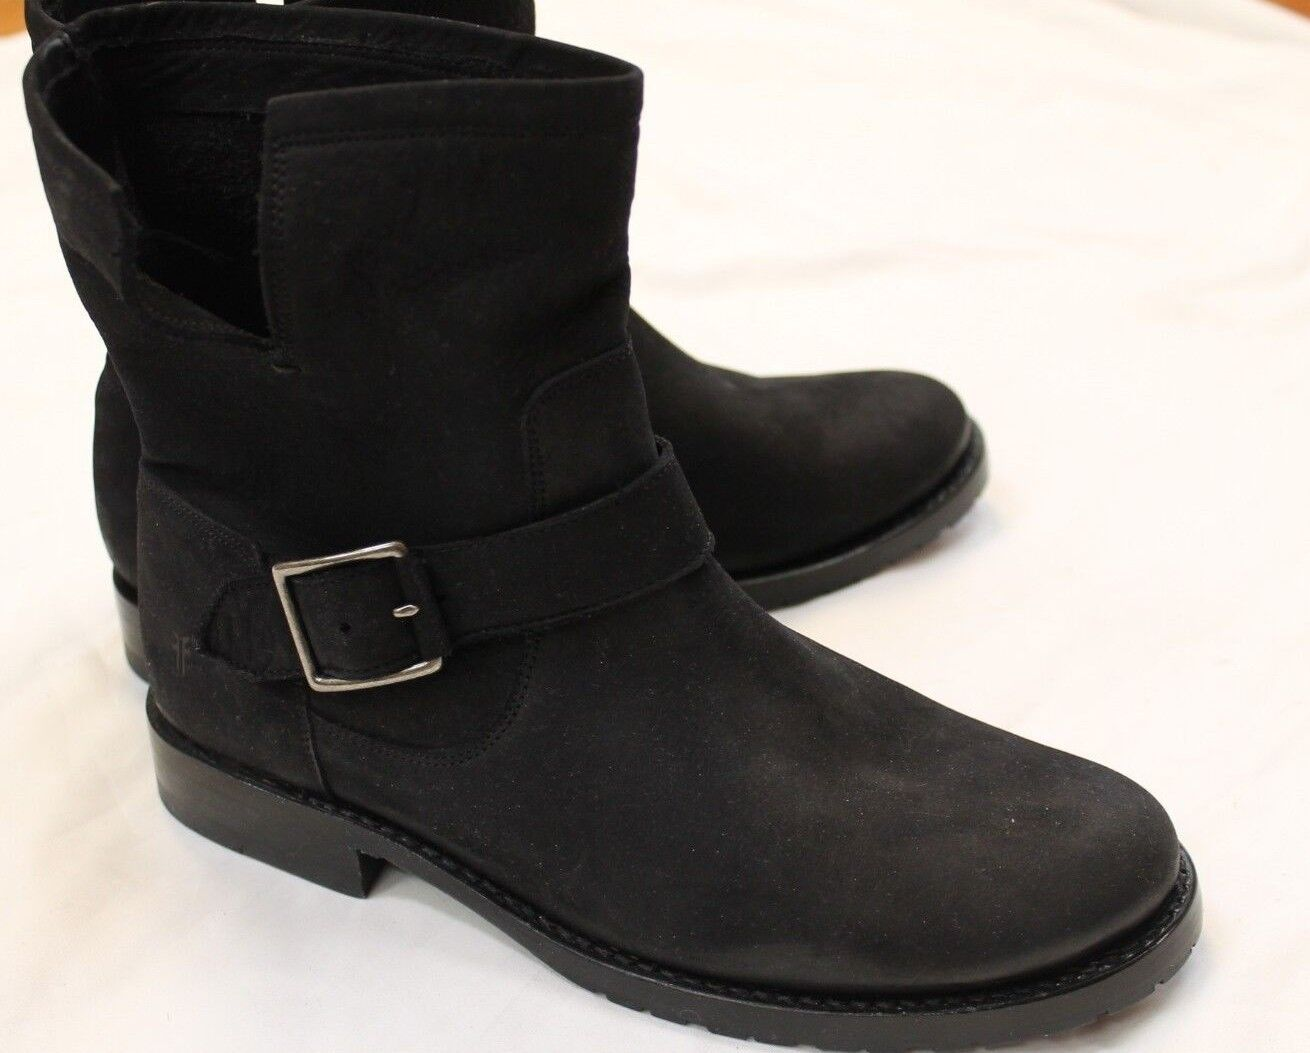 NEW Frye Black Side Buckle Riding Boots Short Flats shoes 8.5 M  348